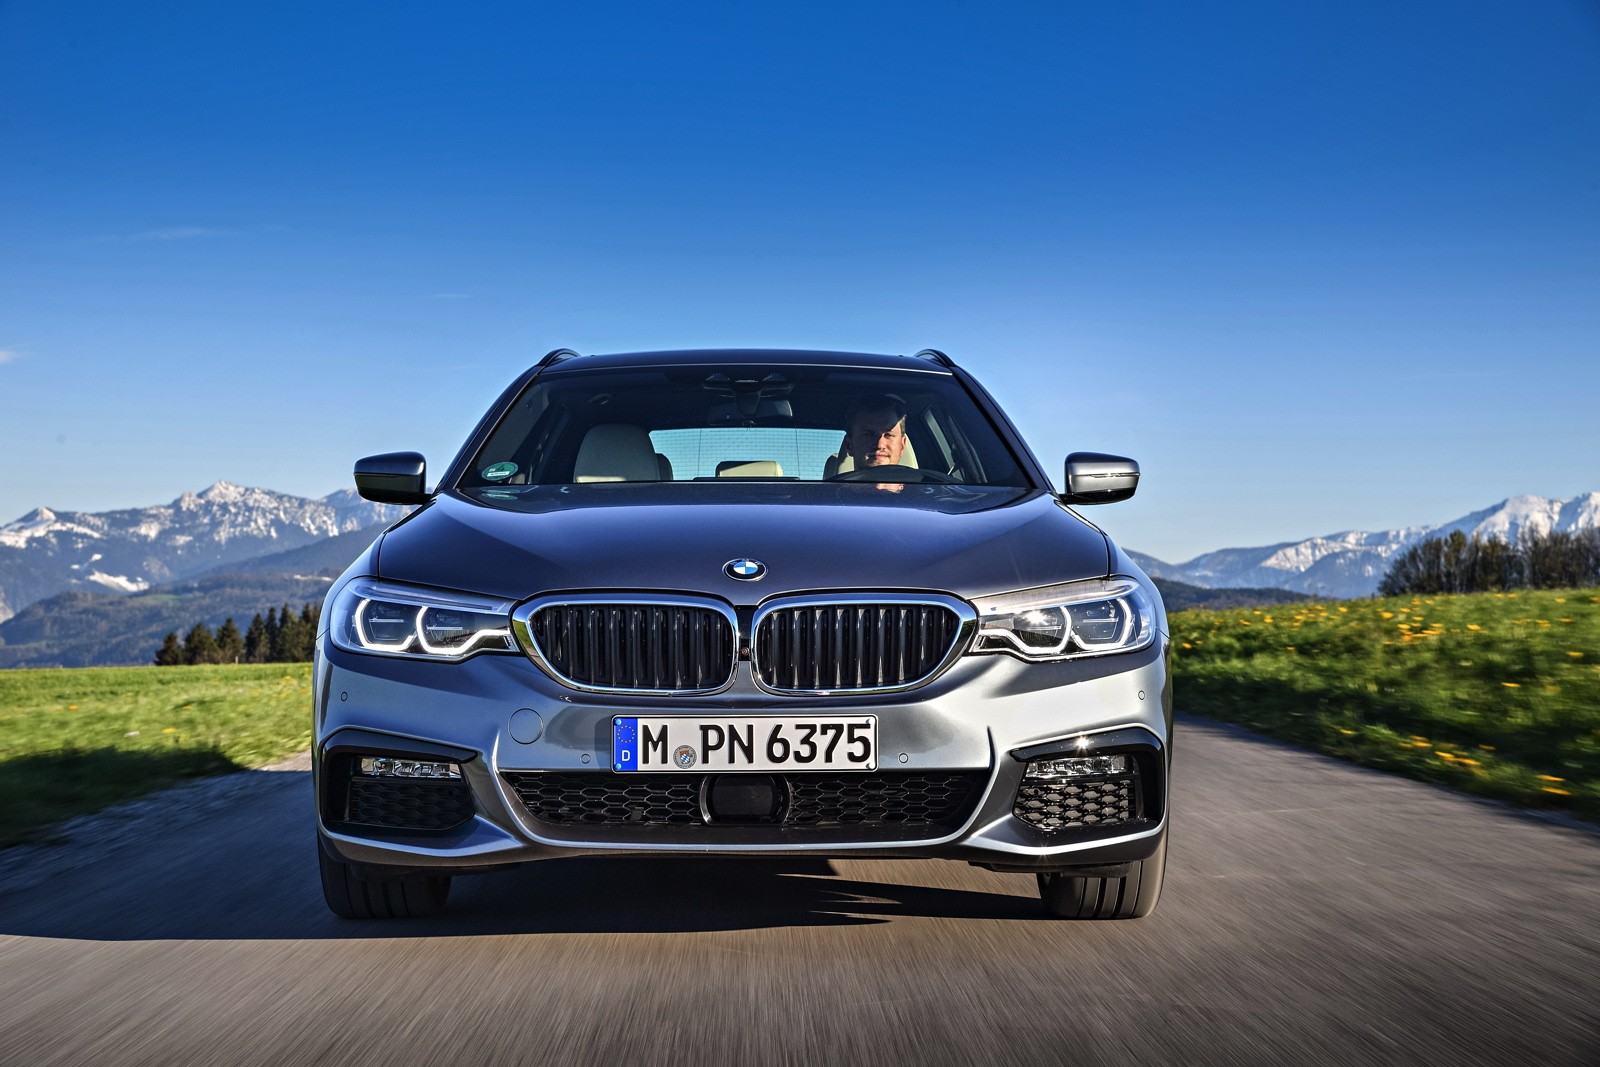 2017 bmw 520d and 530d kick off touring season configurator launched autoevolution. Black Bedroom Furniture Sets. Home Design Ideas